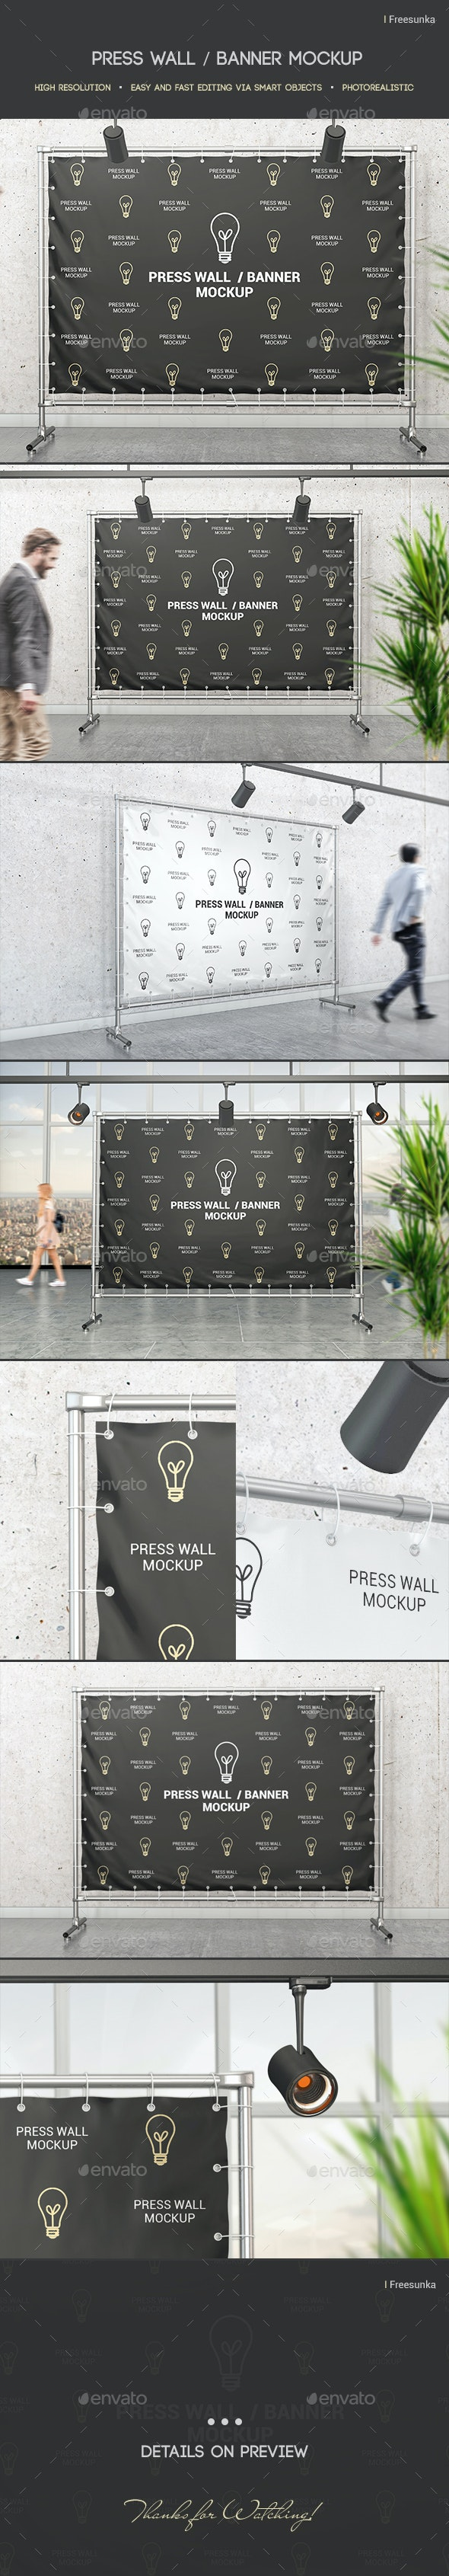 Press Wall / Banner Mockup - Miscellaneous Print